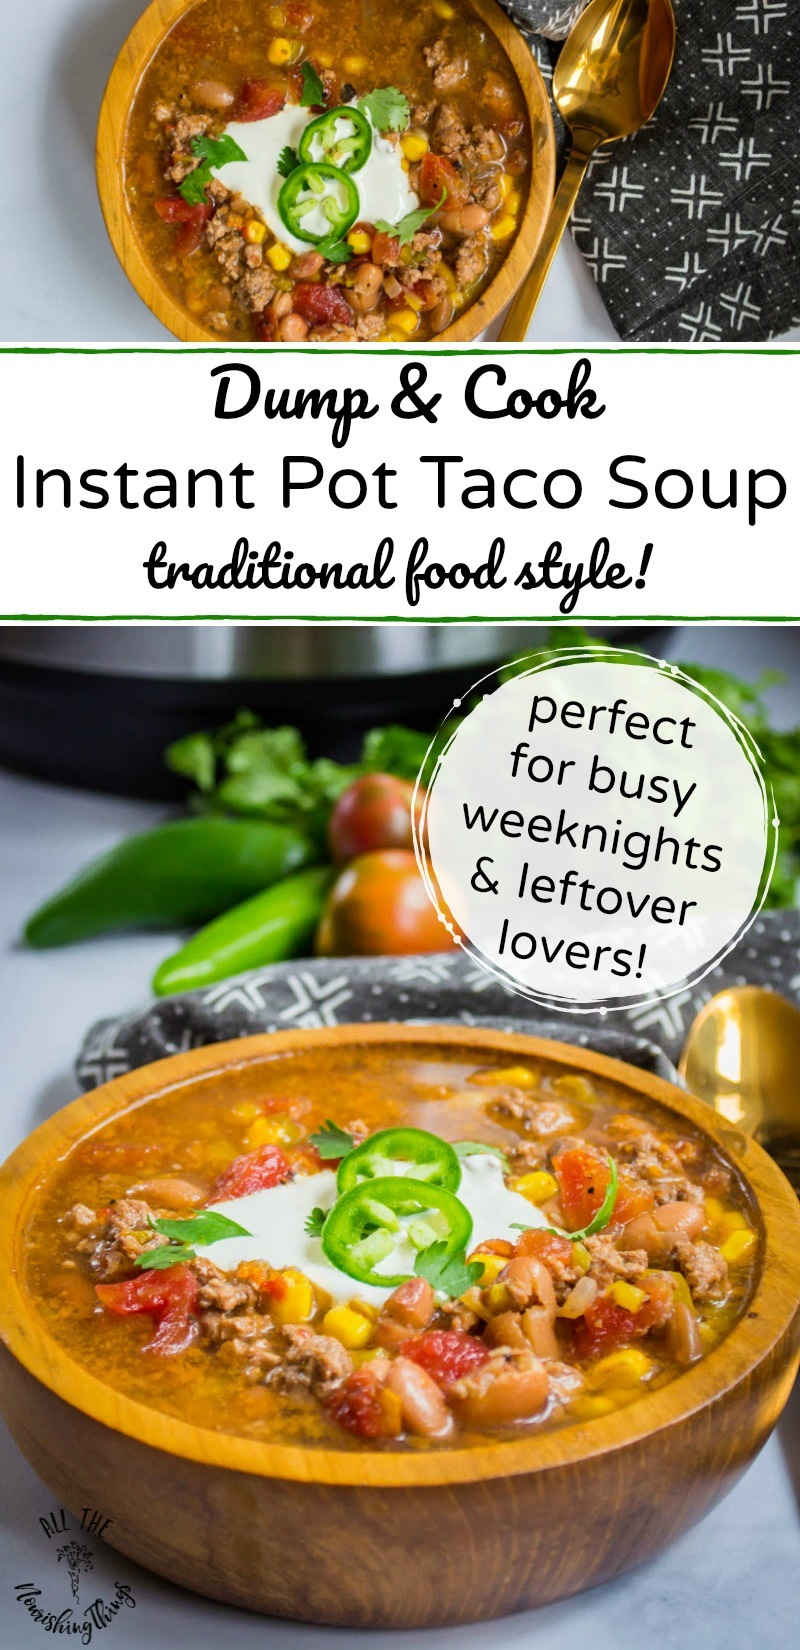 dump and cook instant pot taco soup with text overlay